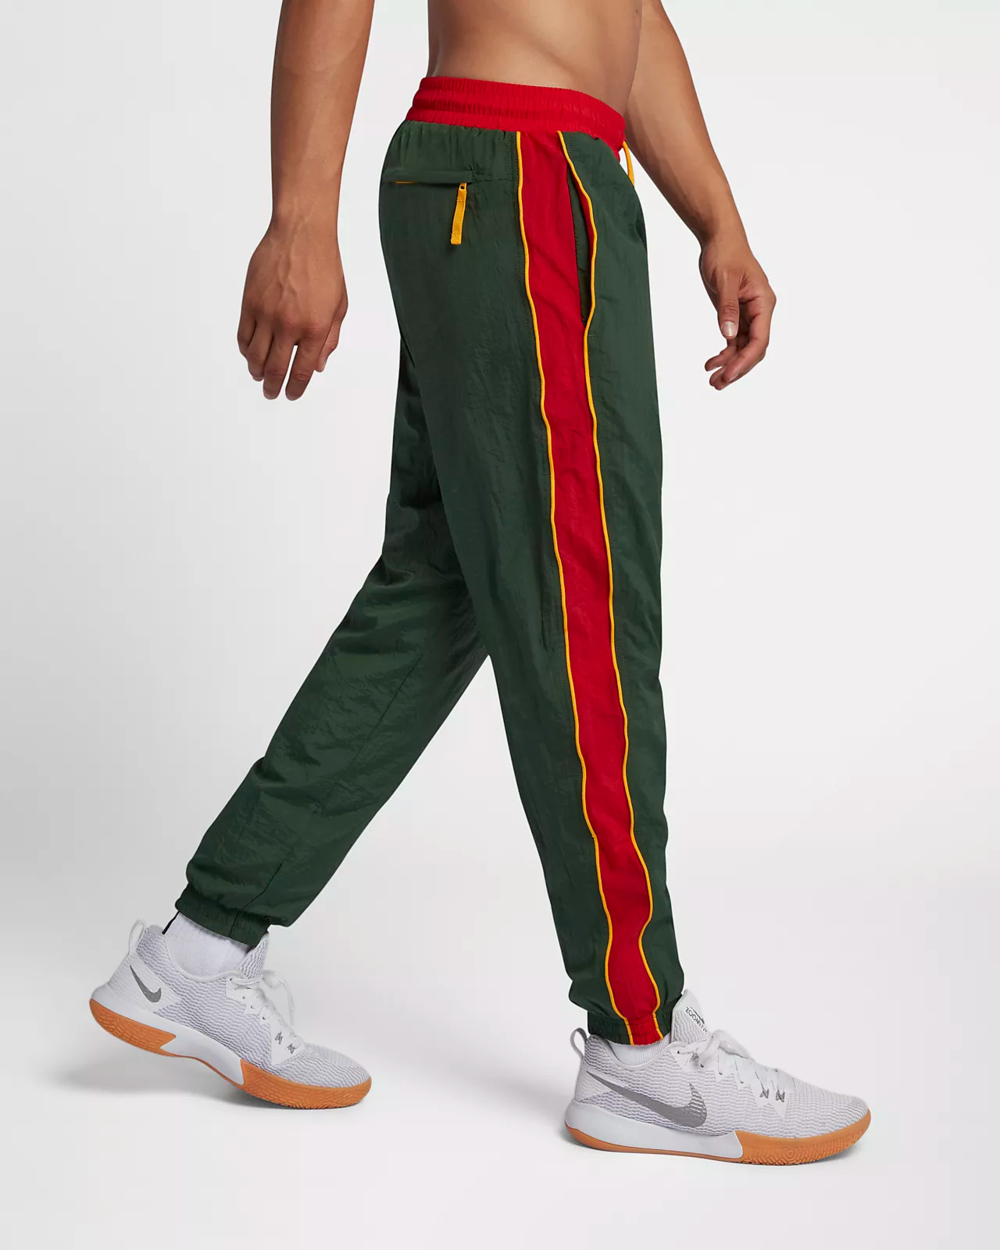 throwback-mens-woven-tracksuit-basketball-pants-cFcVn5.png